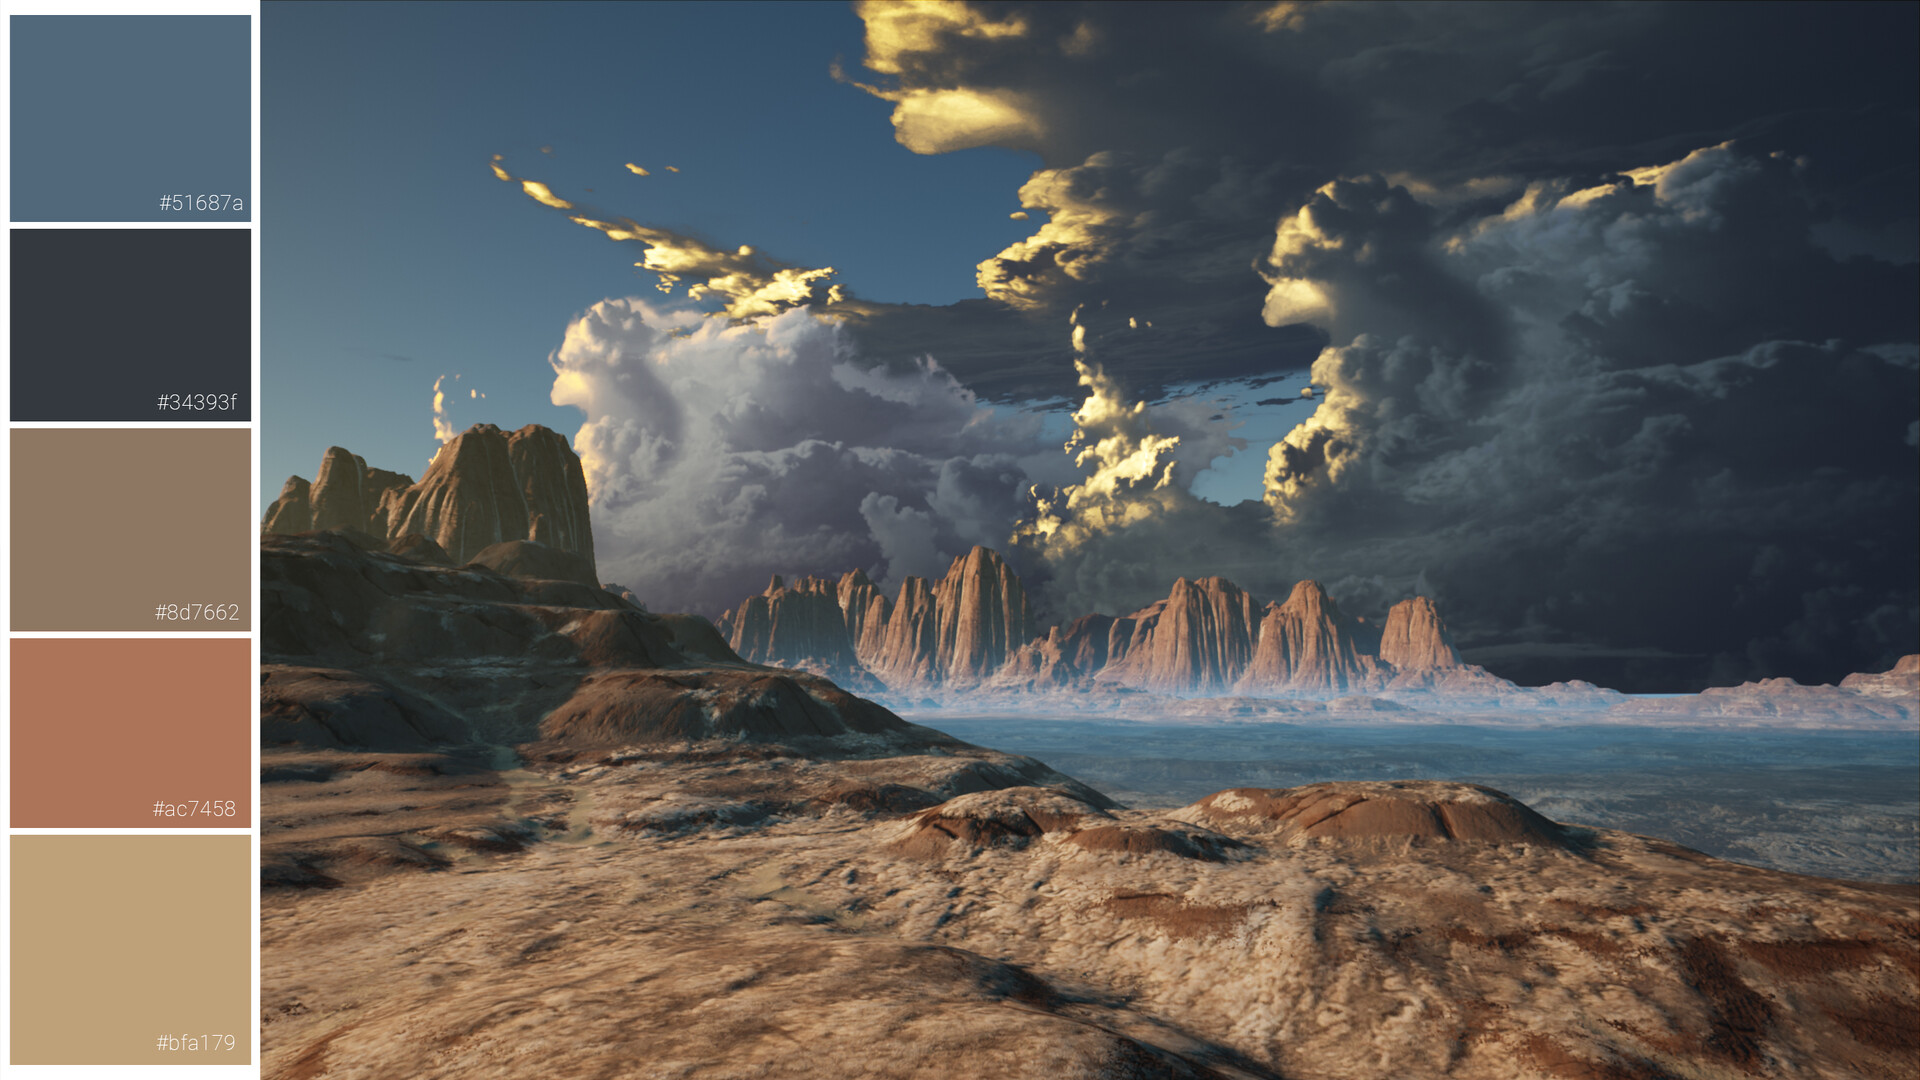 Environment shot from Unreal Engine